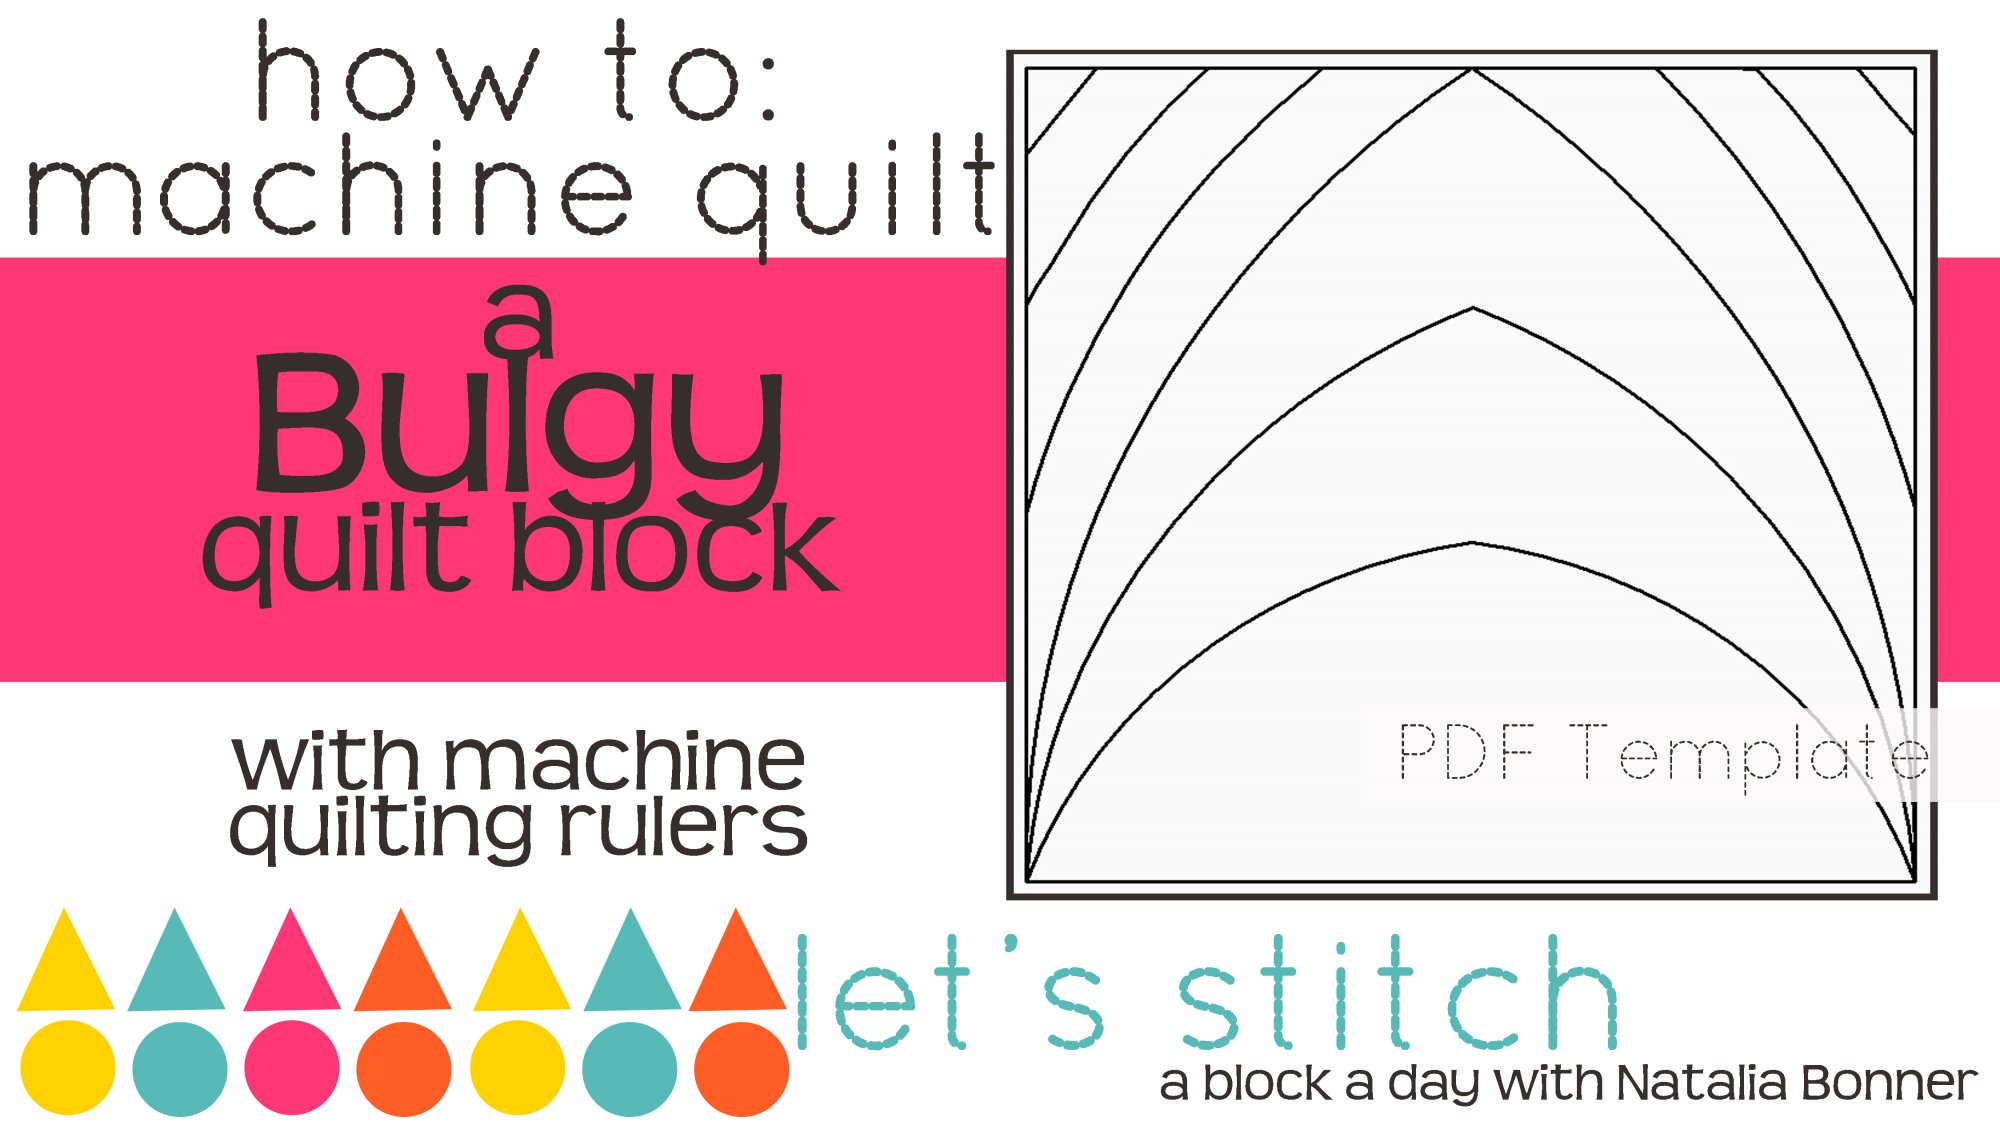 Let's Stitch - A Block a Day With Natalia Bonner - PDF - Bulgy